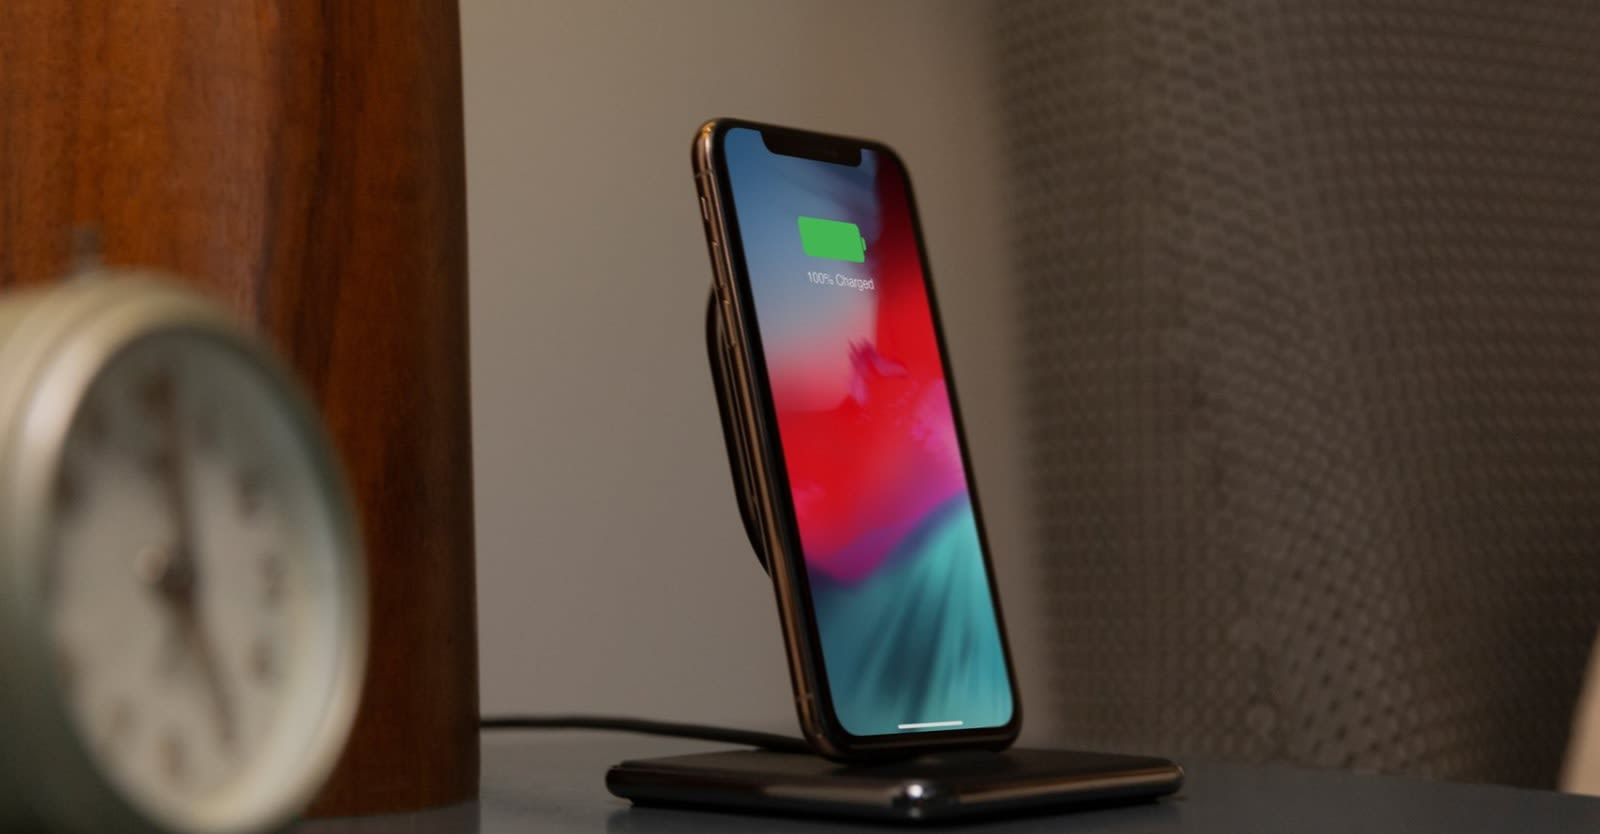 Twelve South's HiRise Wireless charger is made for your desk or on-the-go